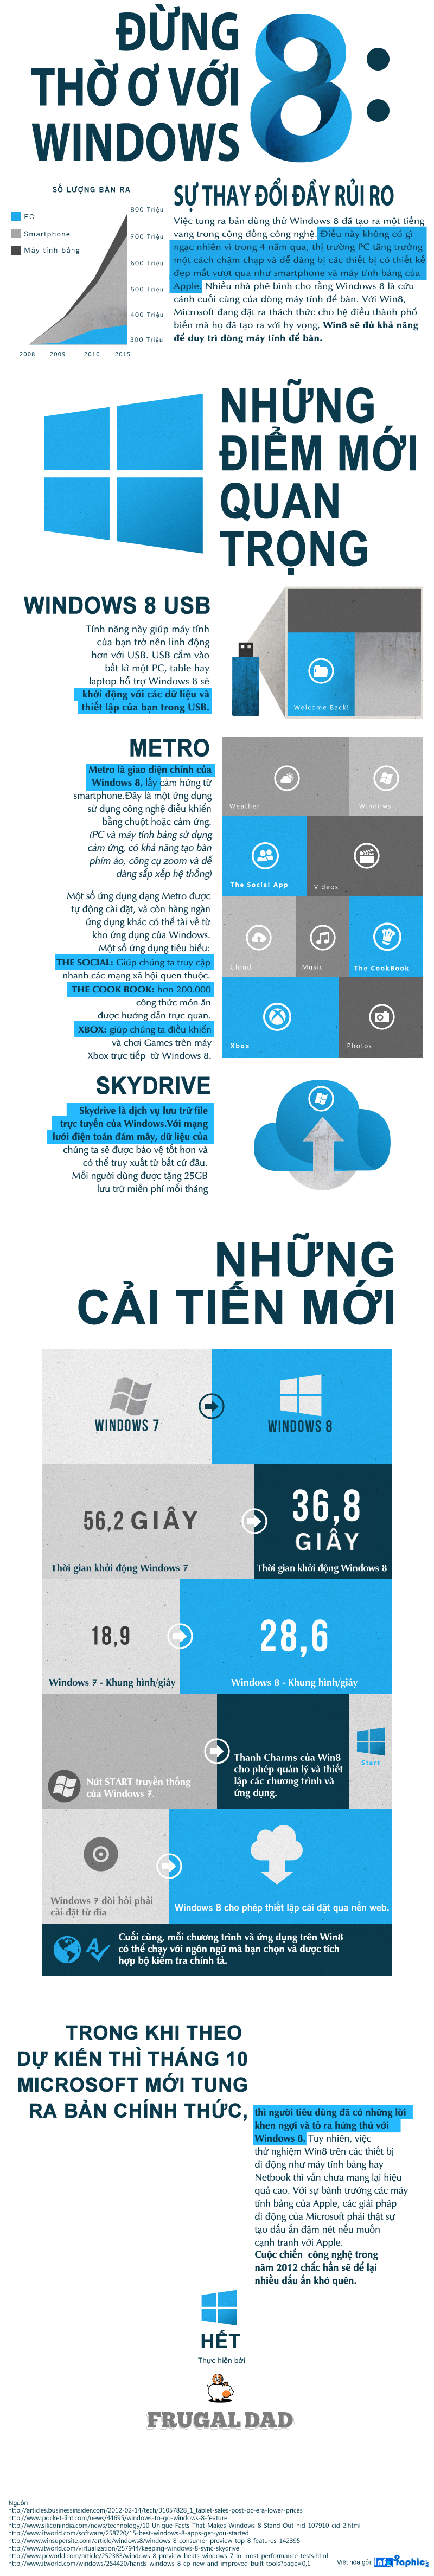 Infographic - Windows 8